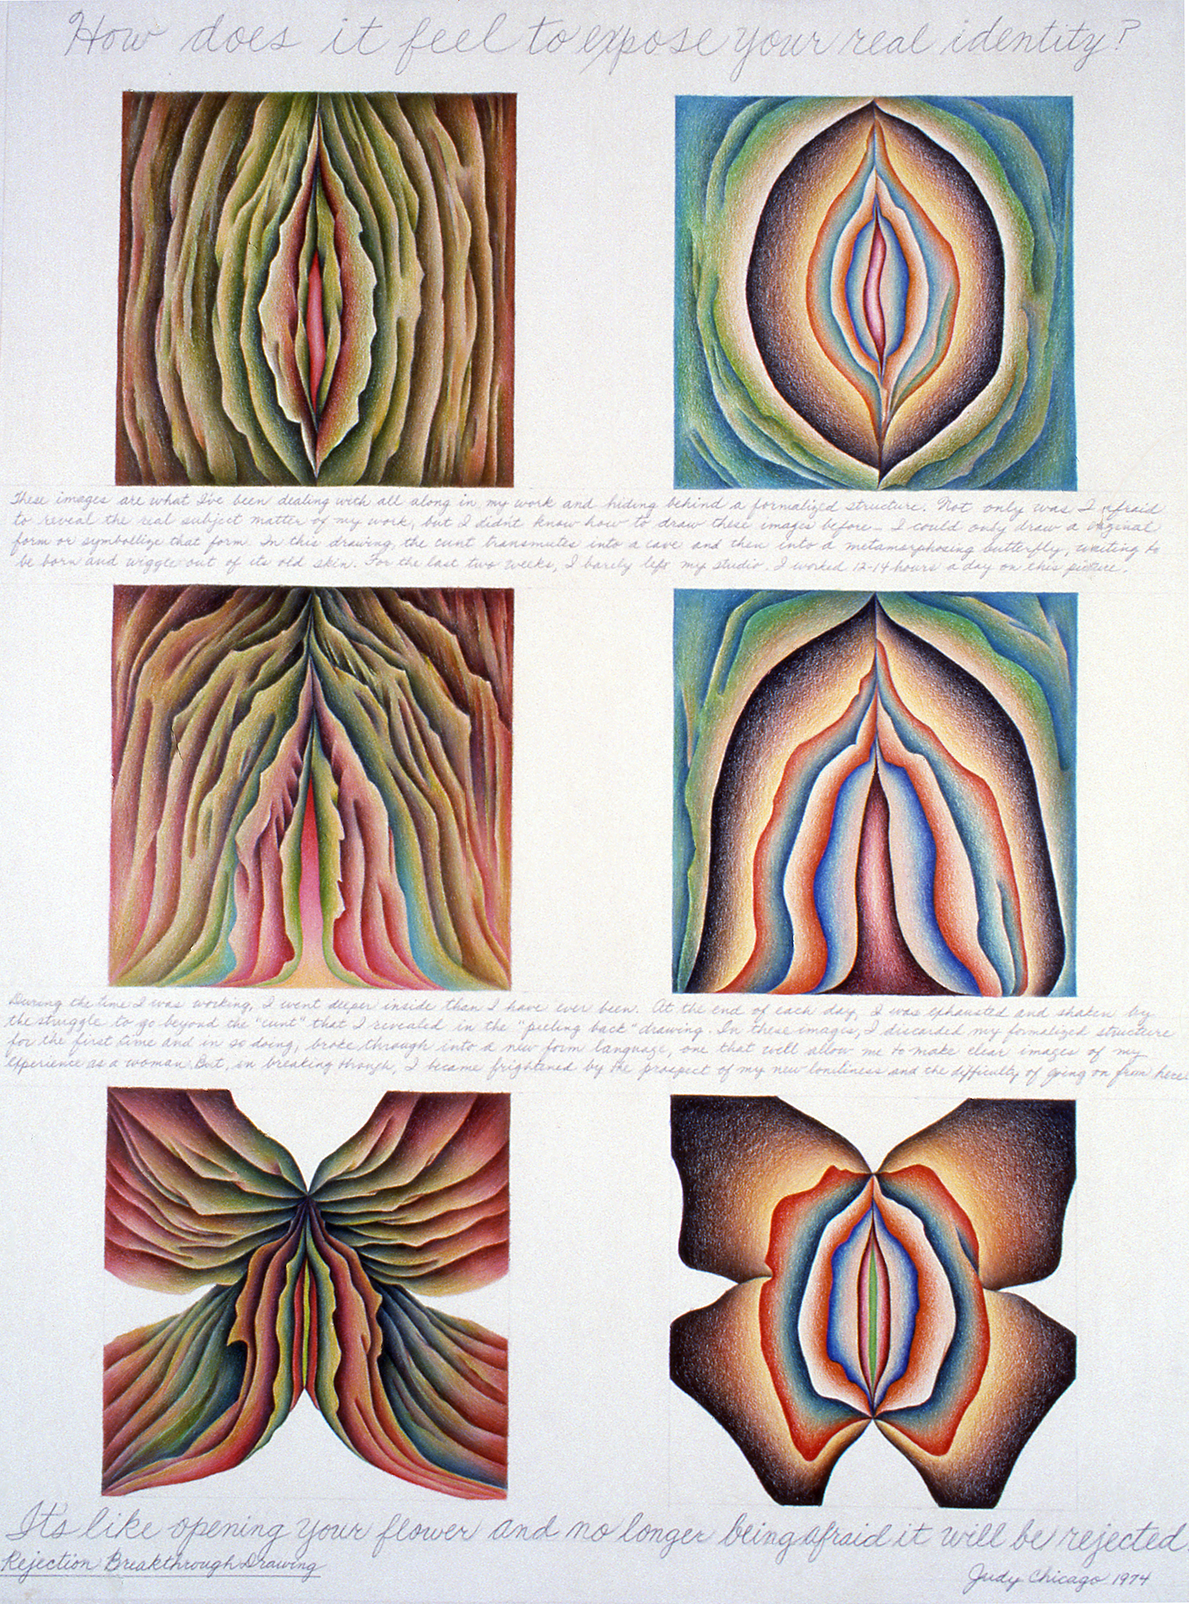 """A page from Chicago's """"Rejection Quintet"""" project that shows six identical squares evenly placed on the page in rows of two, depicting different variations of a vaginal/flower form--closed, then open by the end. At the top in cursive writing is the question: """"How does it feel to expose your real identity?"""" At the bottom the answer: """"It's like opening your flower and no longer being afraid it will be rejected."""" There are two other paragraphs of smaller cursive text in the middle of the drawing."""